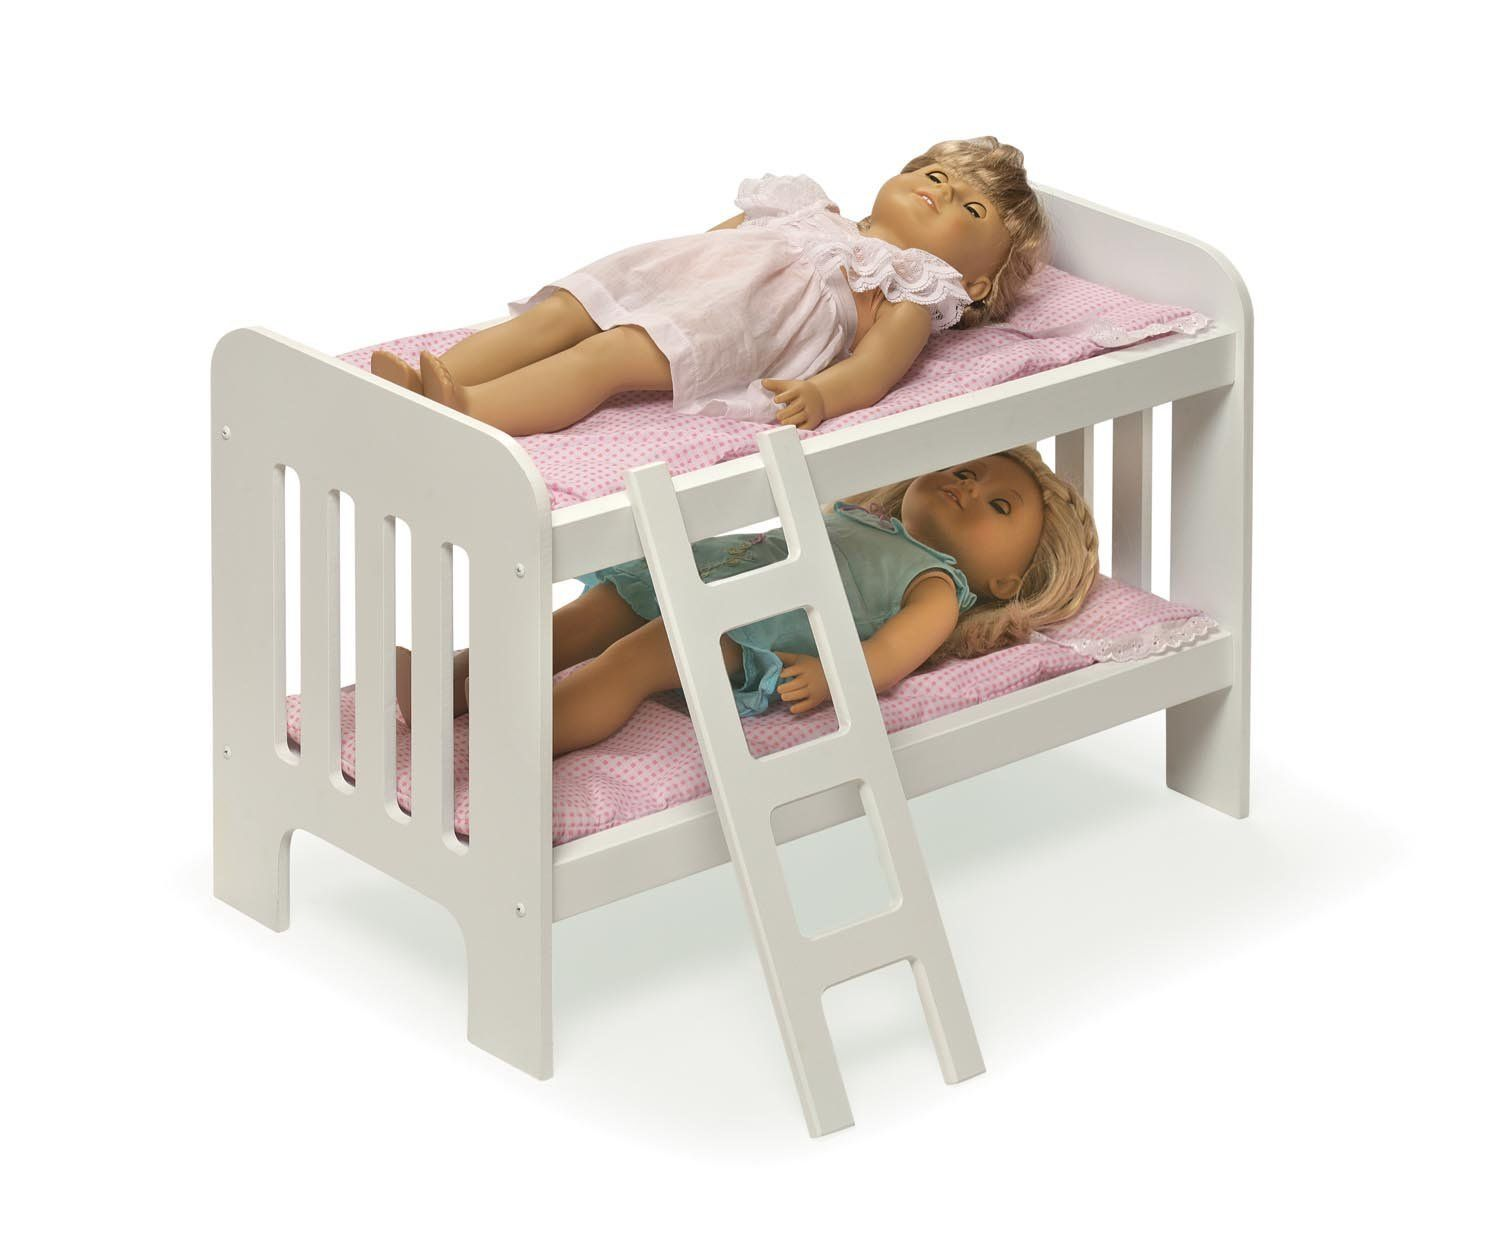 Itus time for a doll sleepover inch doll bed pinterest doll